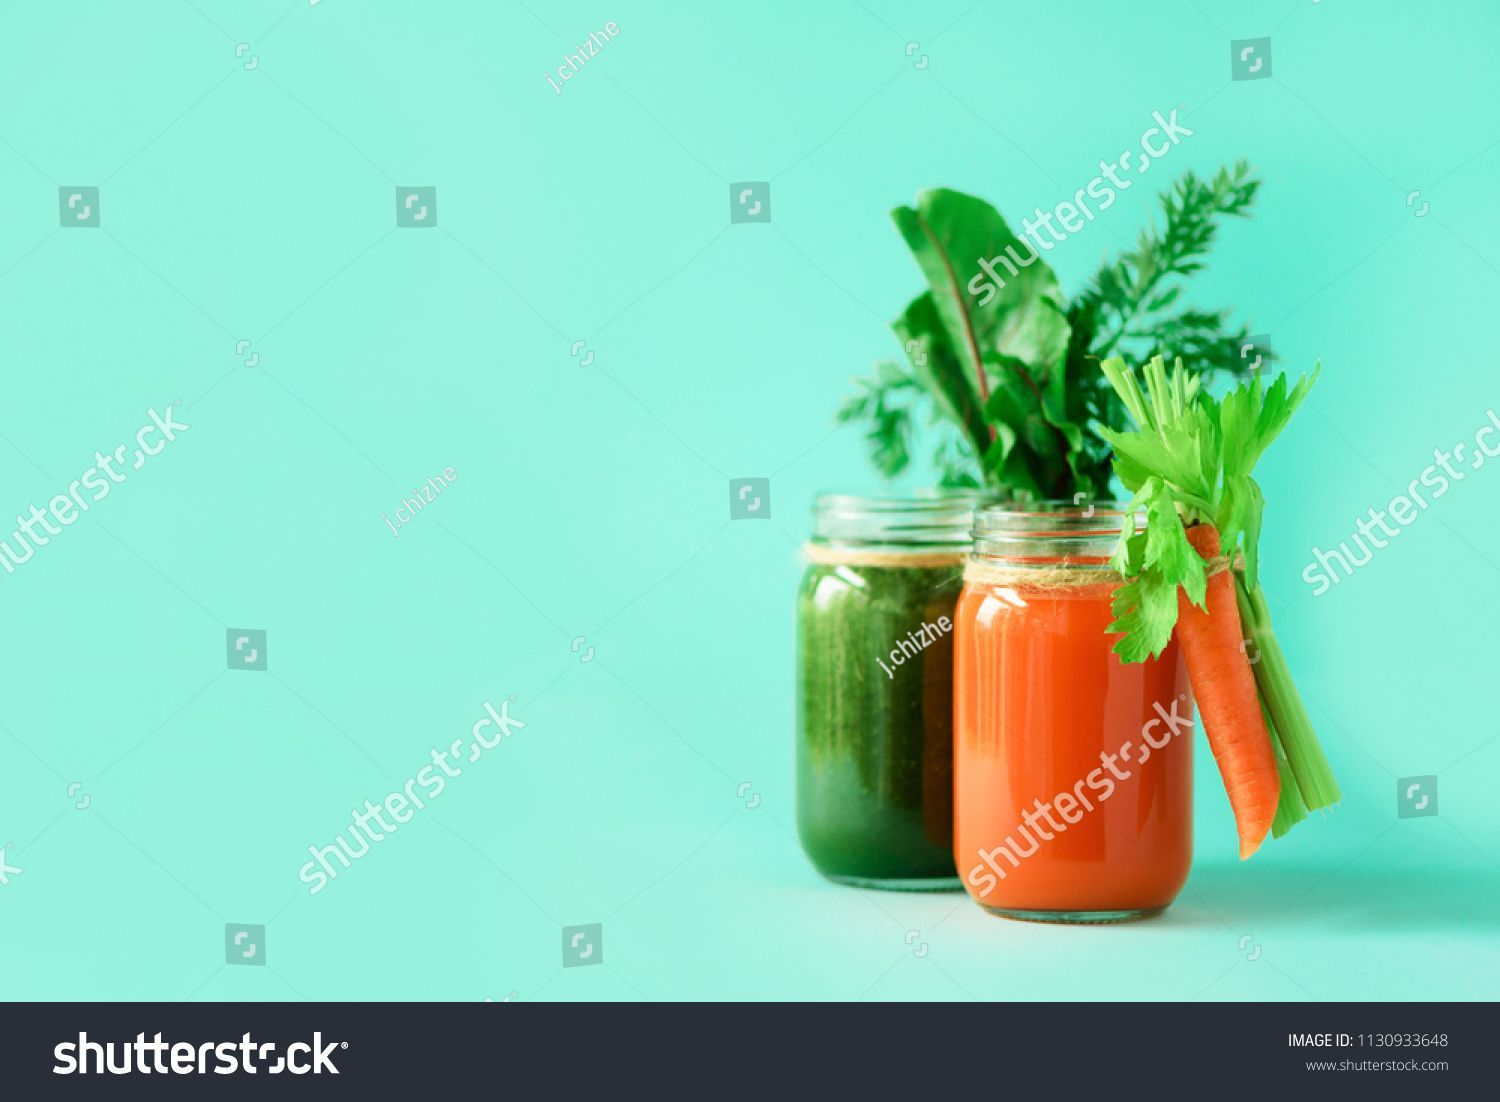 Two bottles of green and orange smoothies on blue background. Detox drinks in glass jar from vegetables - carrot, celery, beet greens and tops. Copy space. Summer food concept. , bottles of green and orange smoothies on blue background. Detox drinks in glass jar from vegetables - carrot, celery, beet greens and tops. Copy space. Summer food concept. ,